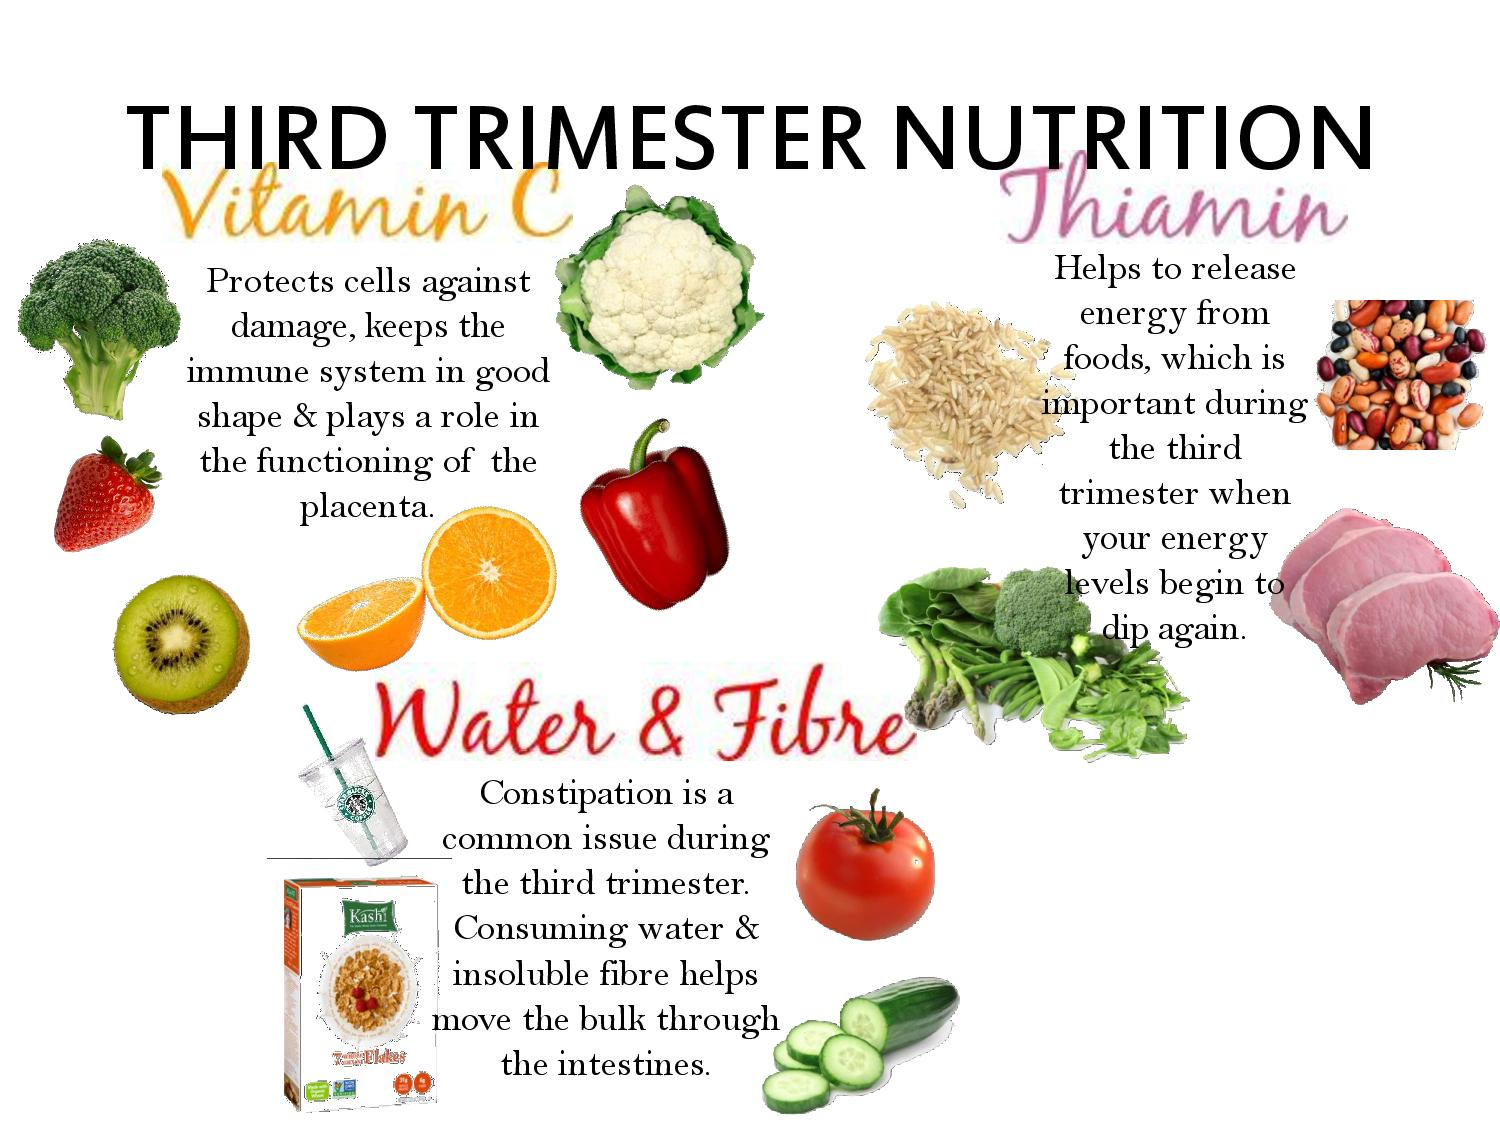 Fit Momma Clean Baby : Nutrition Tips for your Third Trimester